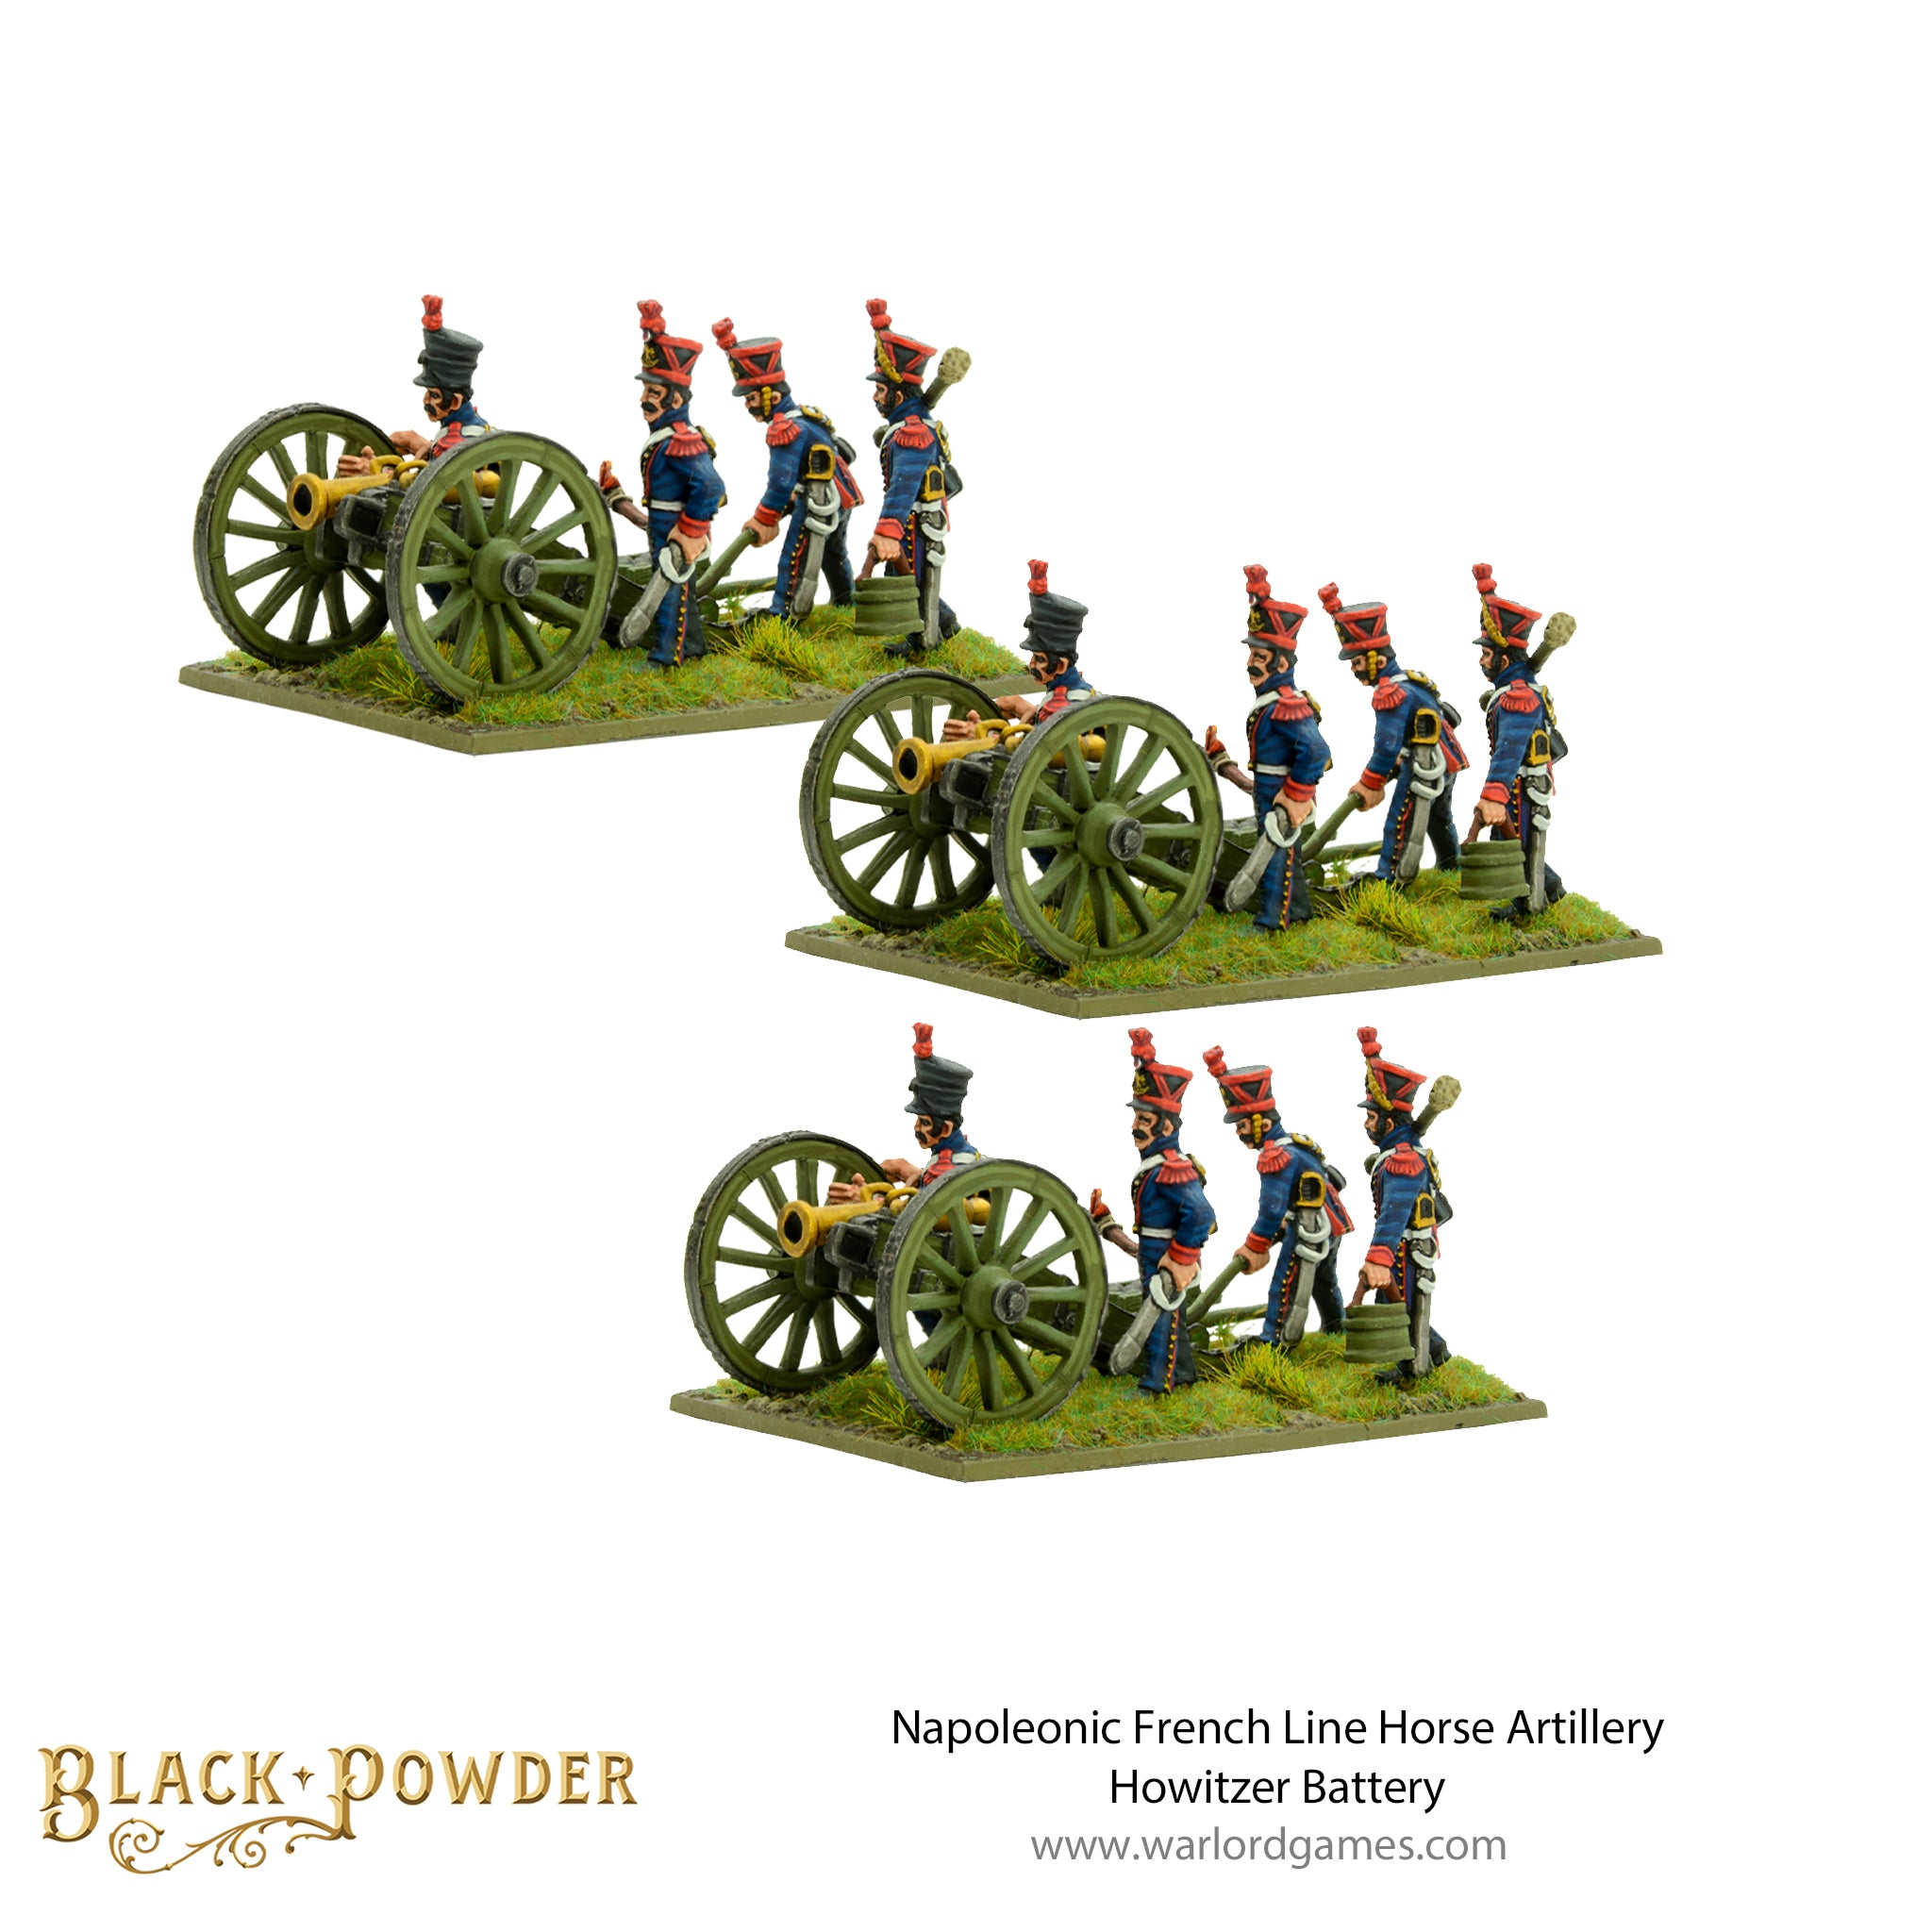 Napoleonic French Line Horse Artillery Howitzer Battery